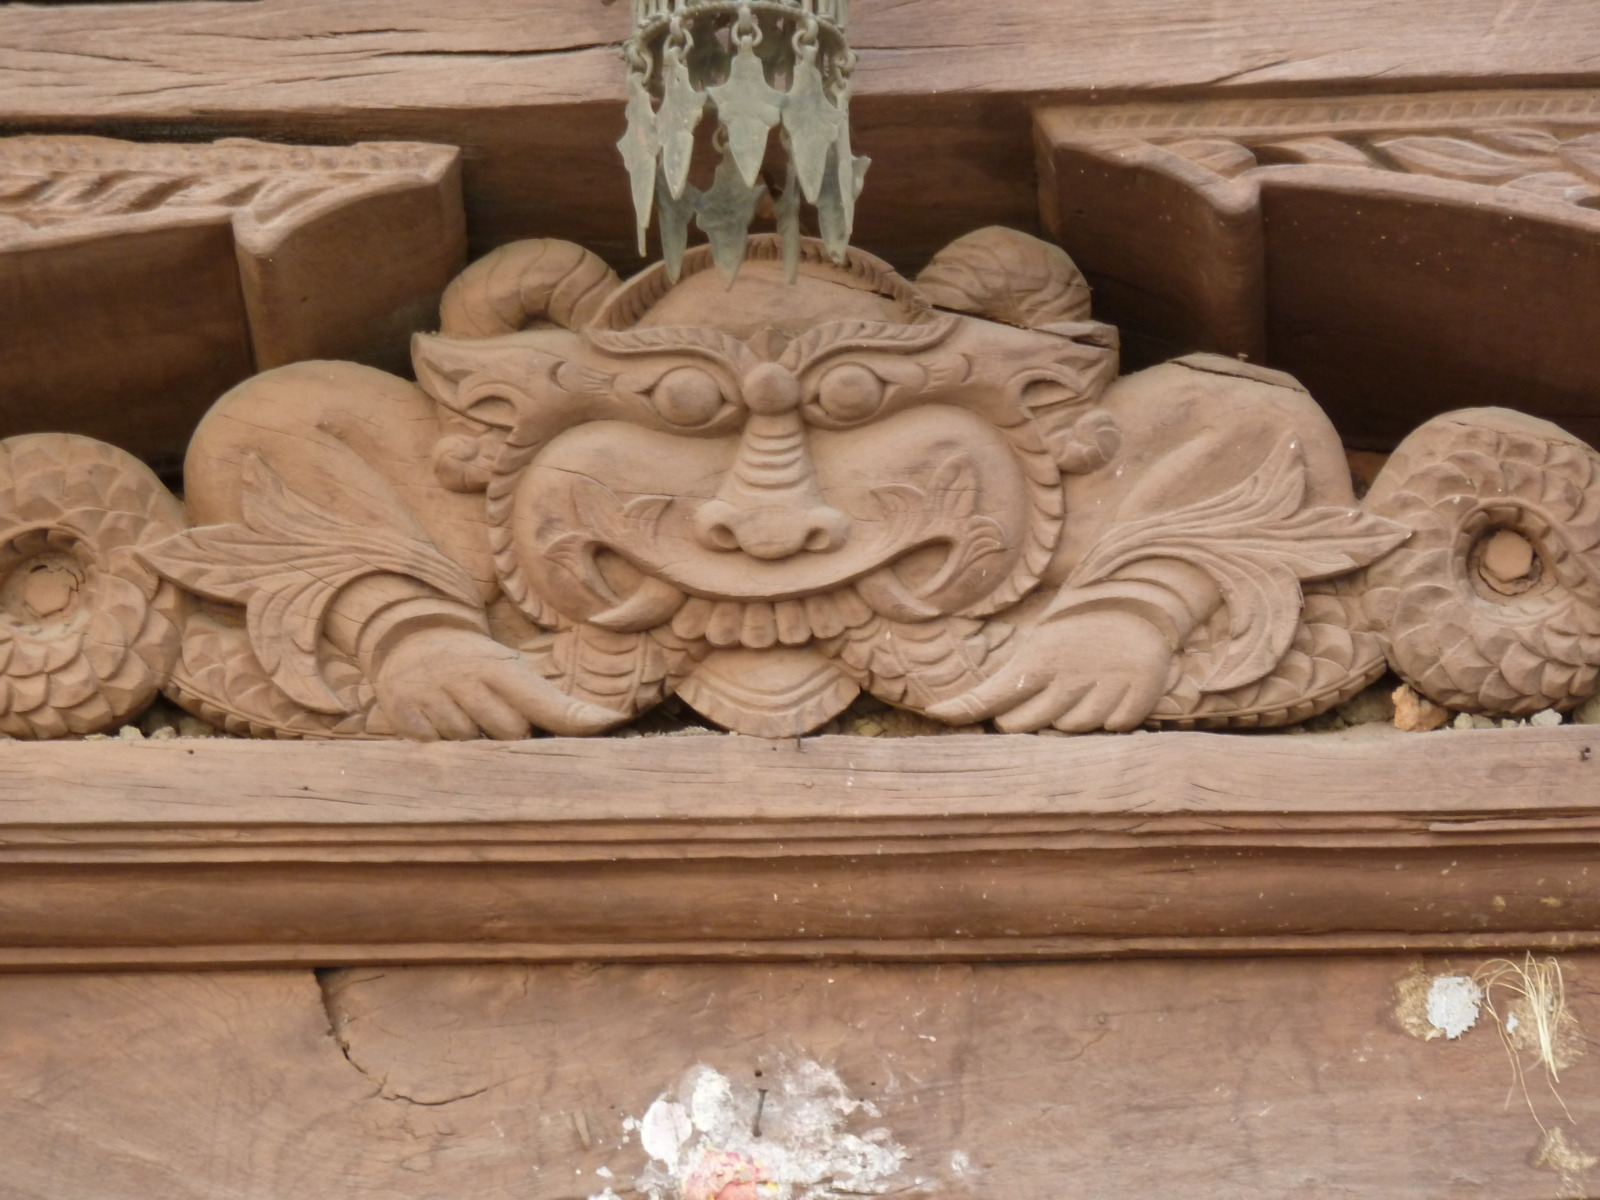 Wooden carving of a diety in Durbar Square Kathmandu.